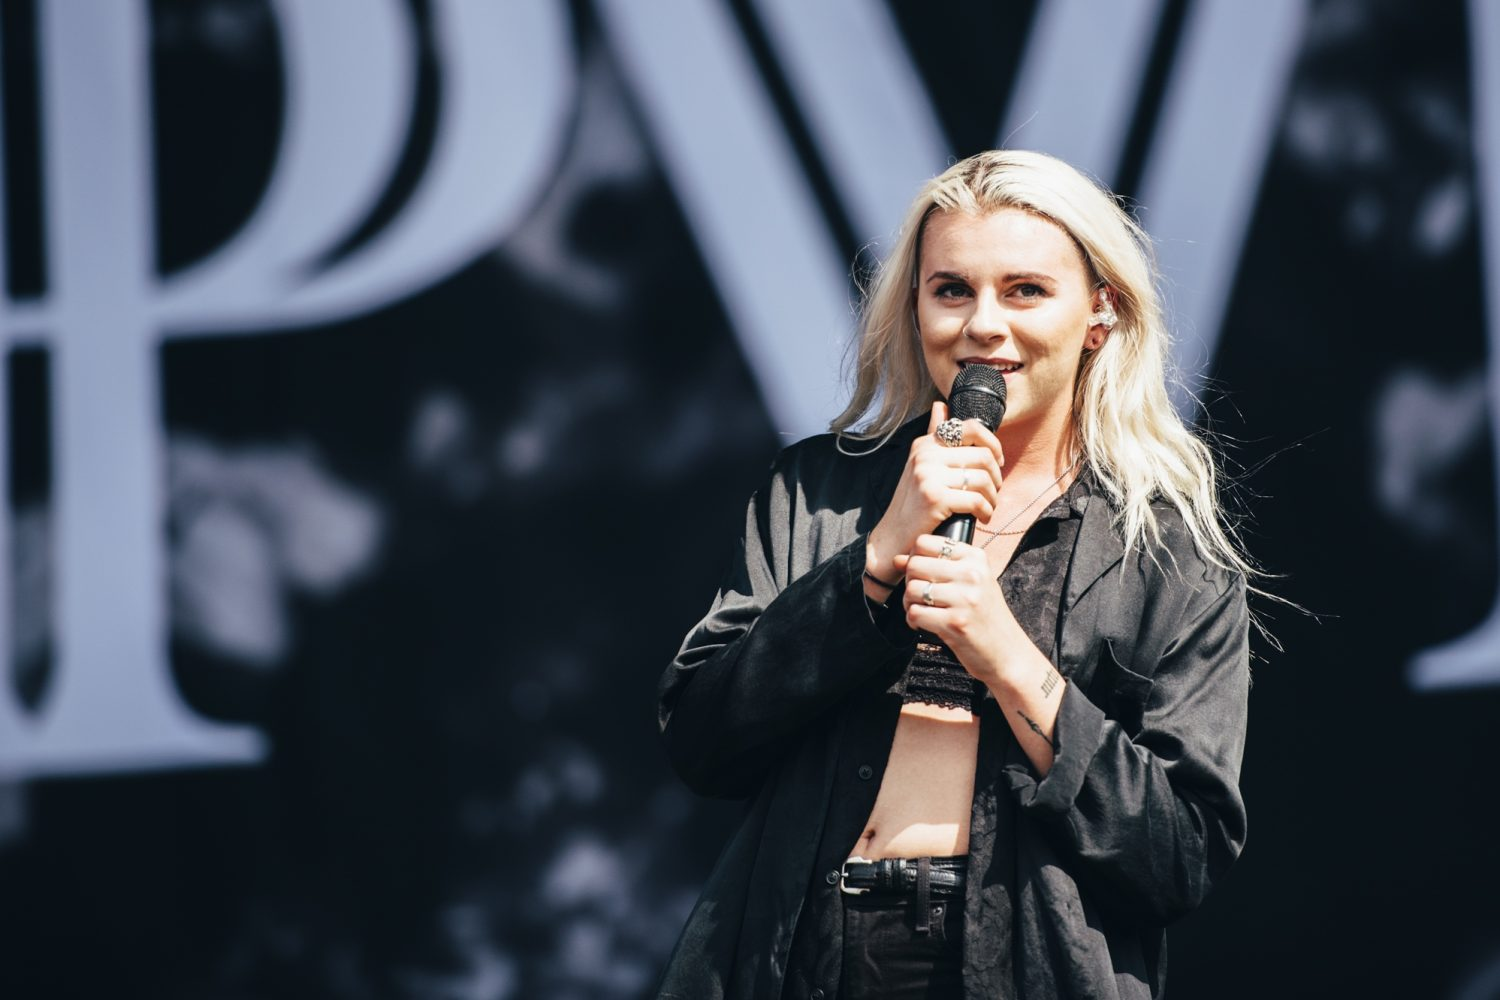 It looks like PVRIS may be preparing to drop something new